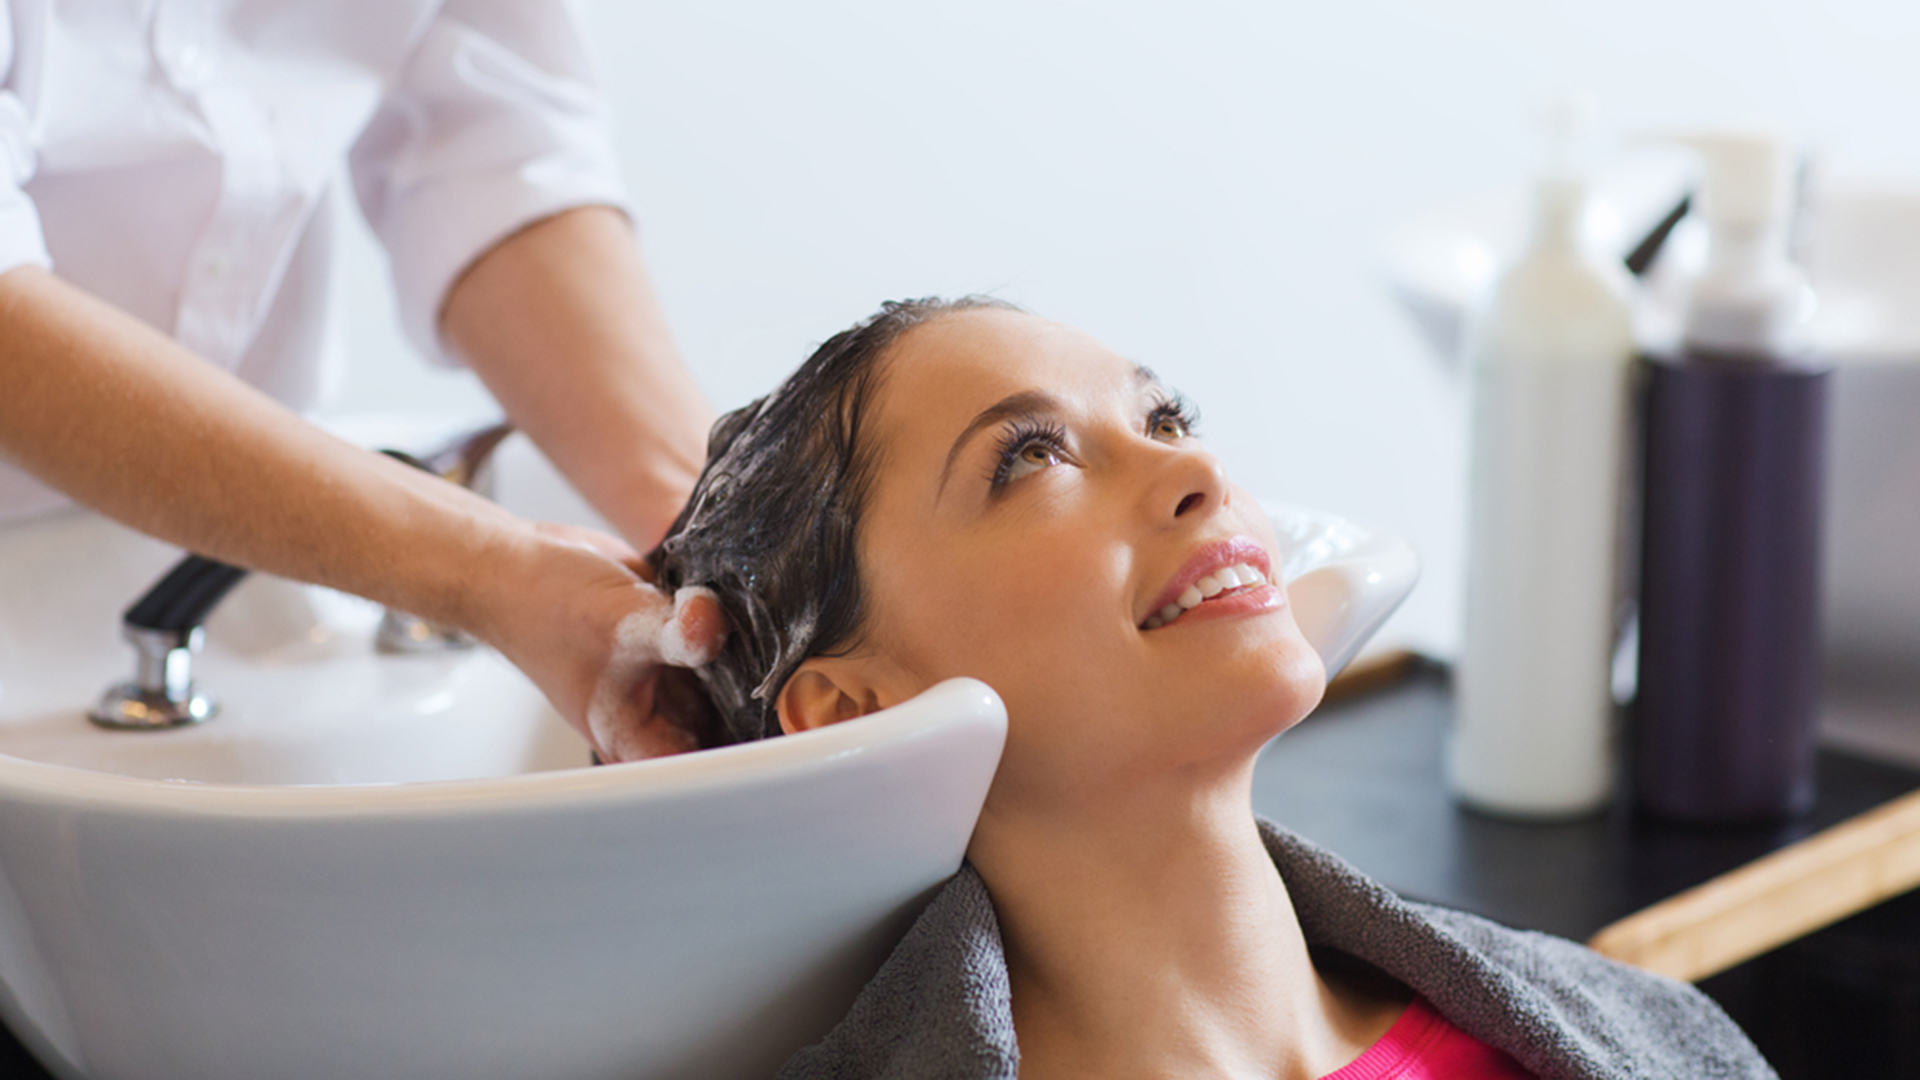 Salon Hair Hair Salon Etiquette How Much Should You Tip Your Hairstylist